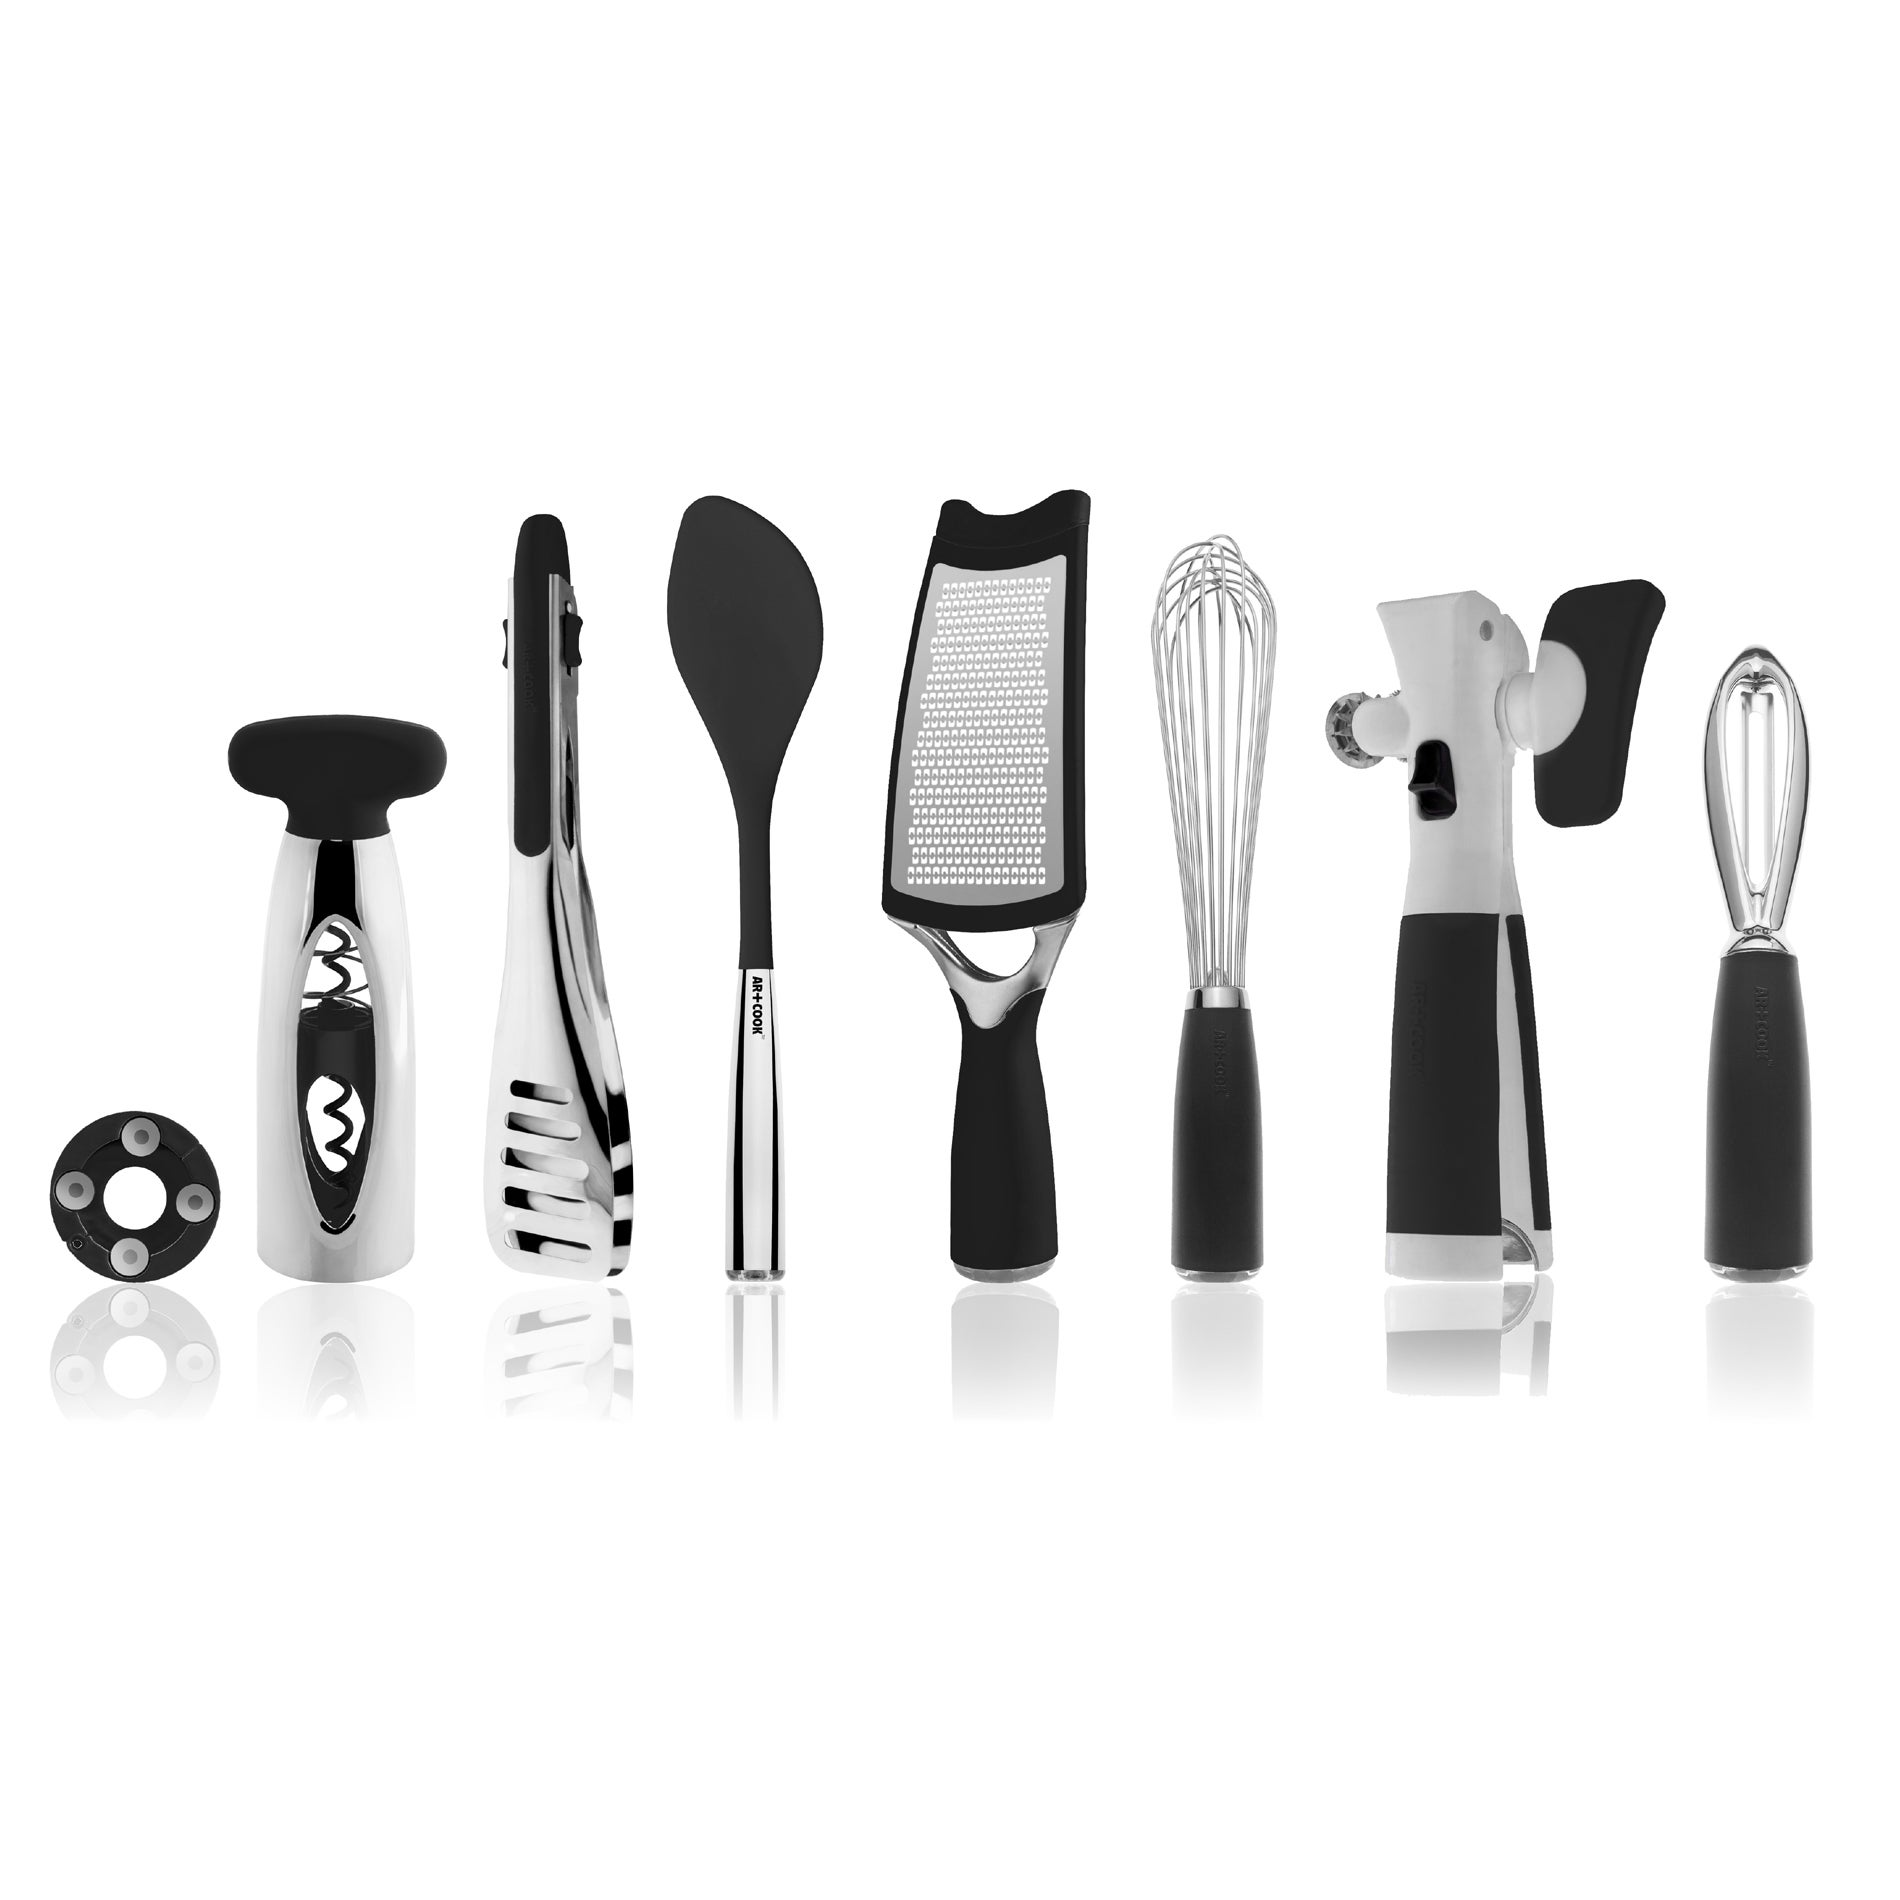 Art and Cook Black 8-piece Kitchen Tool Set